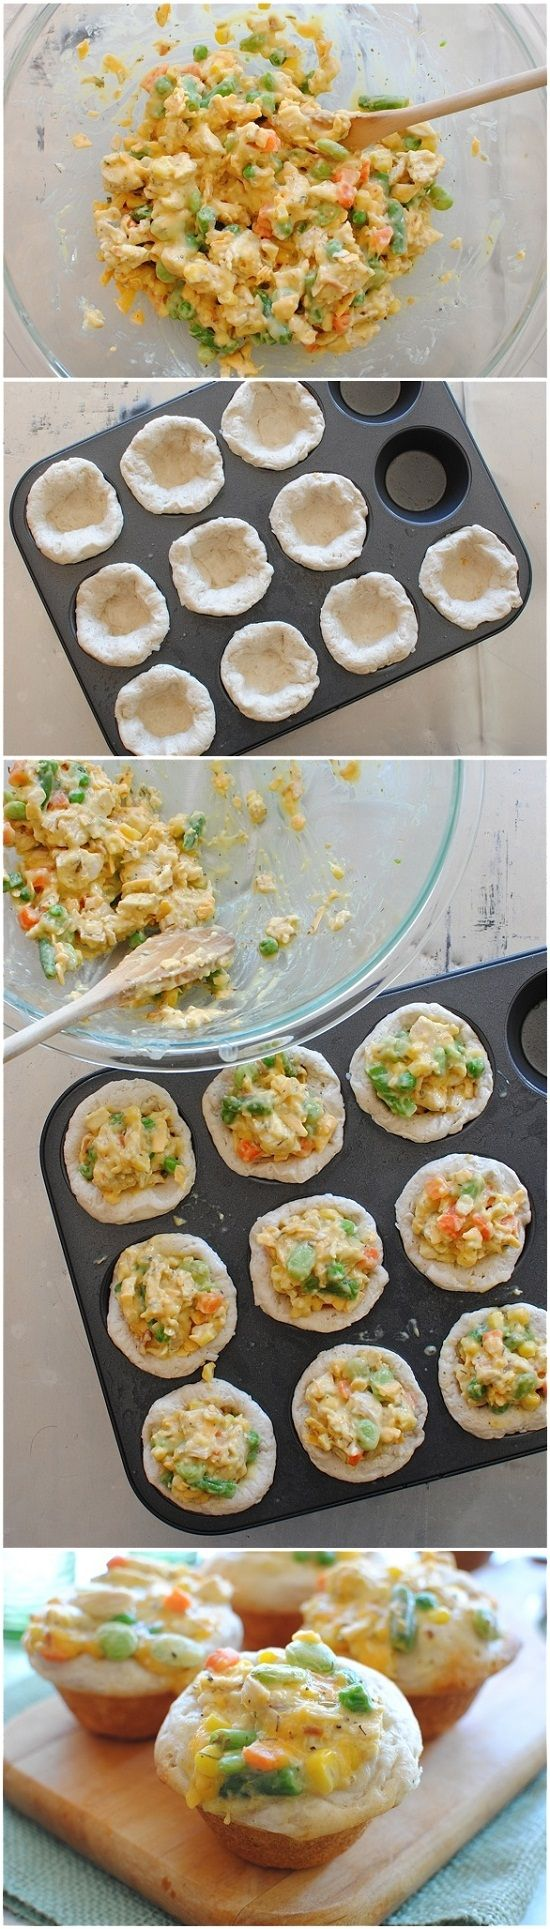 Chicken Pot Pie Cupcakes I would like to use crescent rolls or the flakey biscuits(: mmmmmm